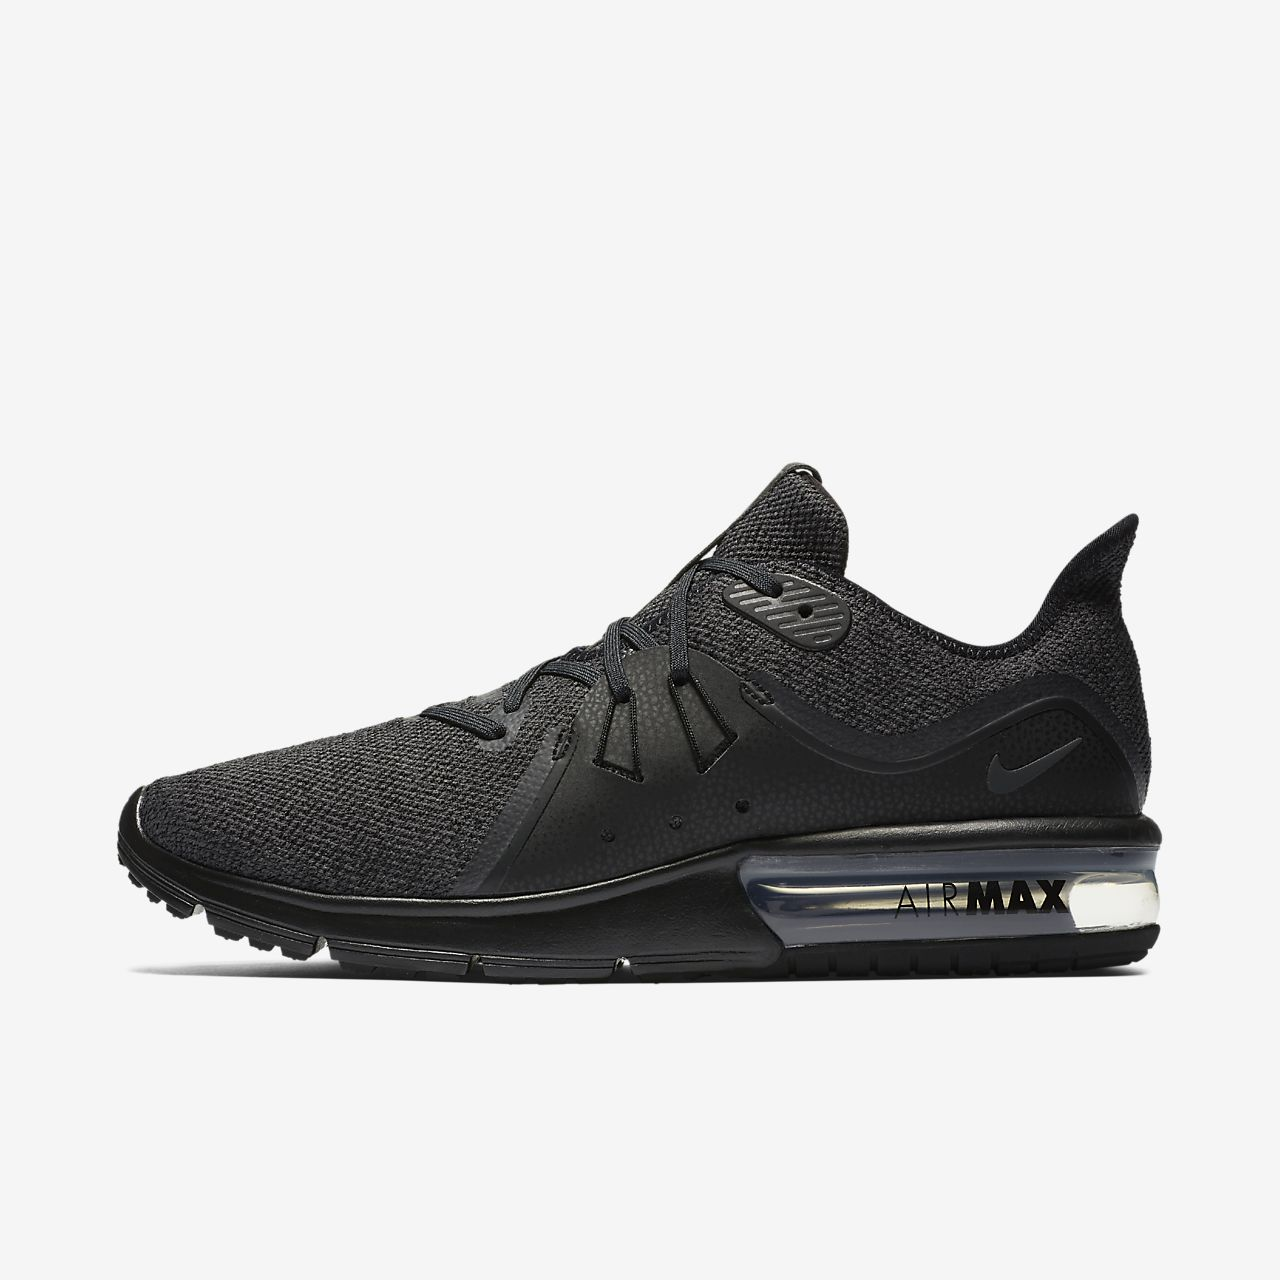 Chaussure de running Nike MA Air Max Sequent 3 pour MA Nike f77521